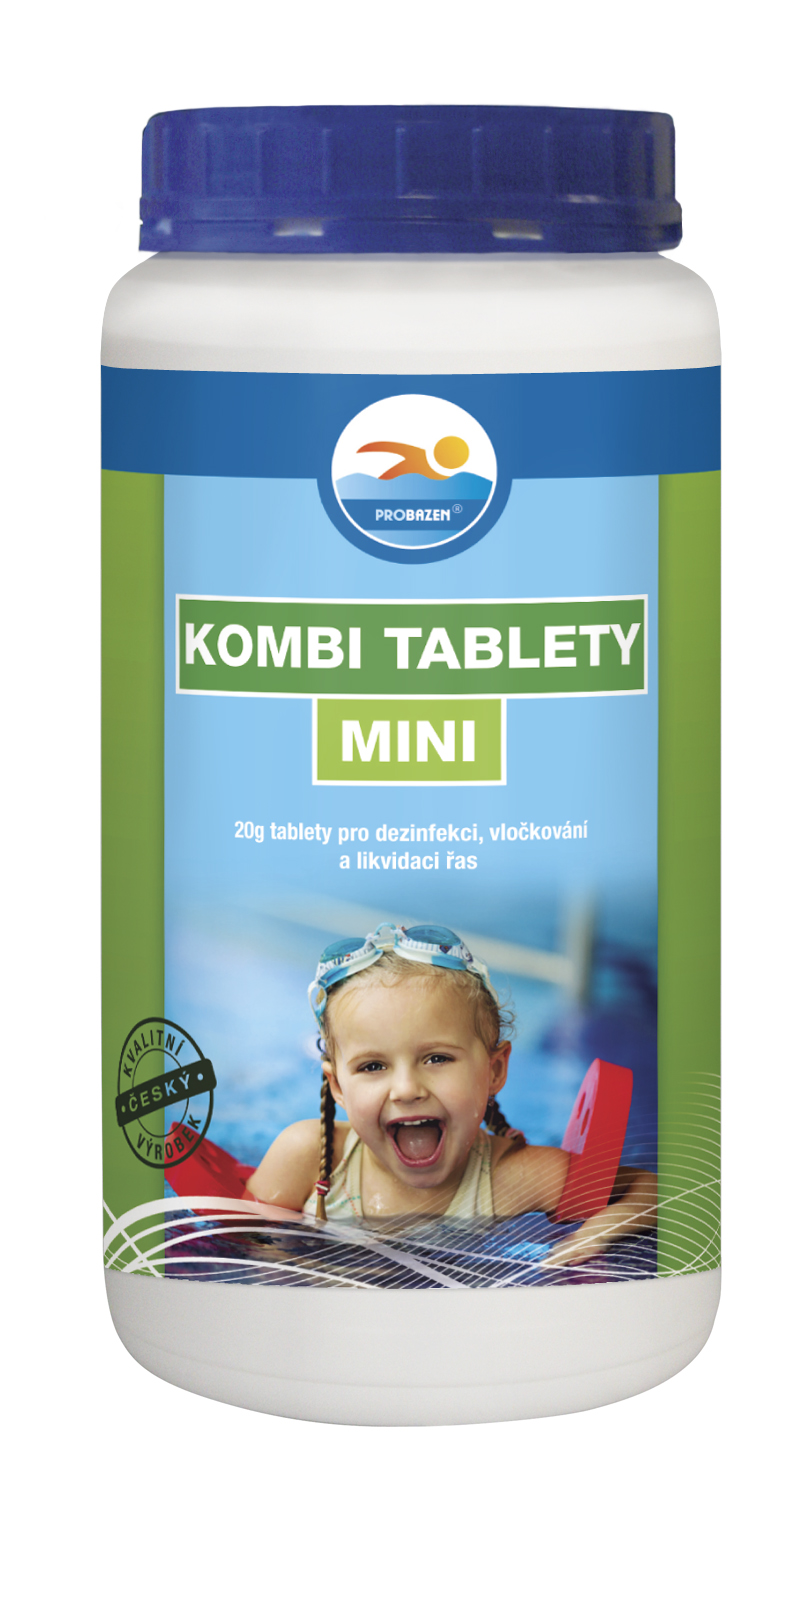 Kombi tablety MINI 1,2 Kg PROBAZEN